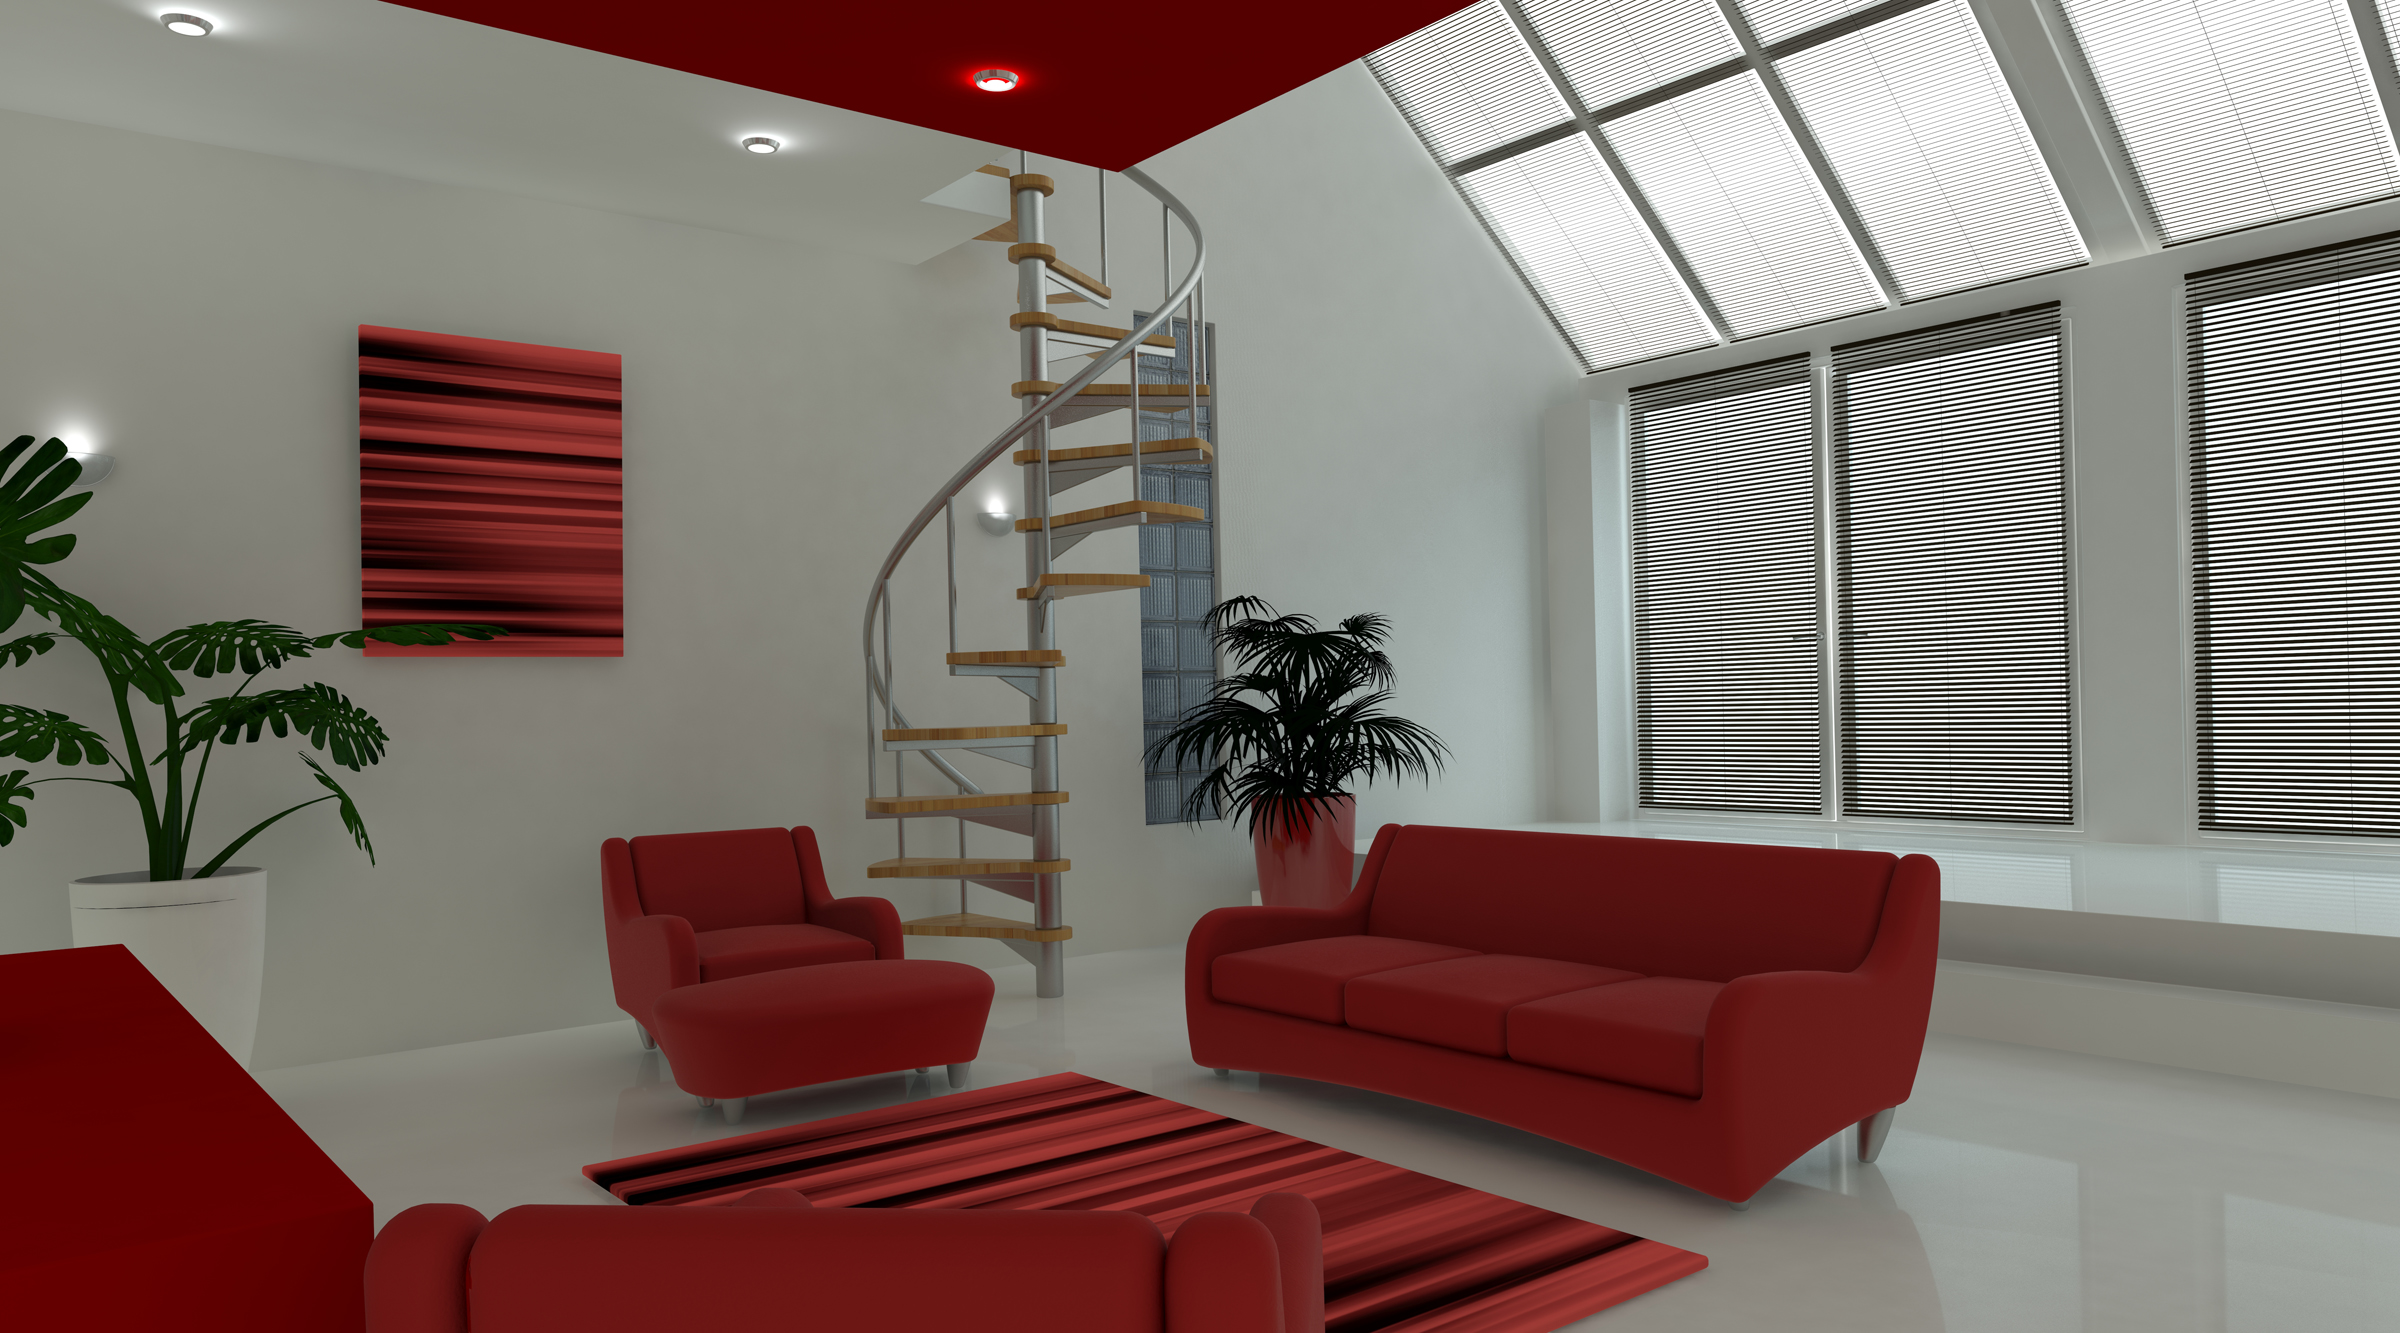 3d design of a room with stairs interior design marbella interior design marbella Diy home design ideas living room software